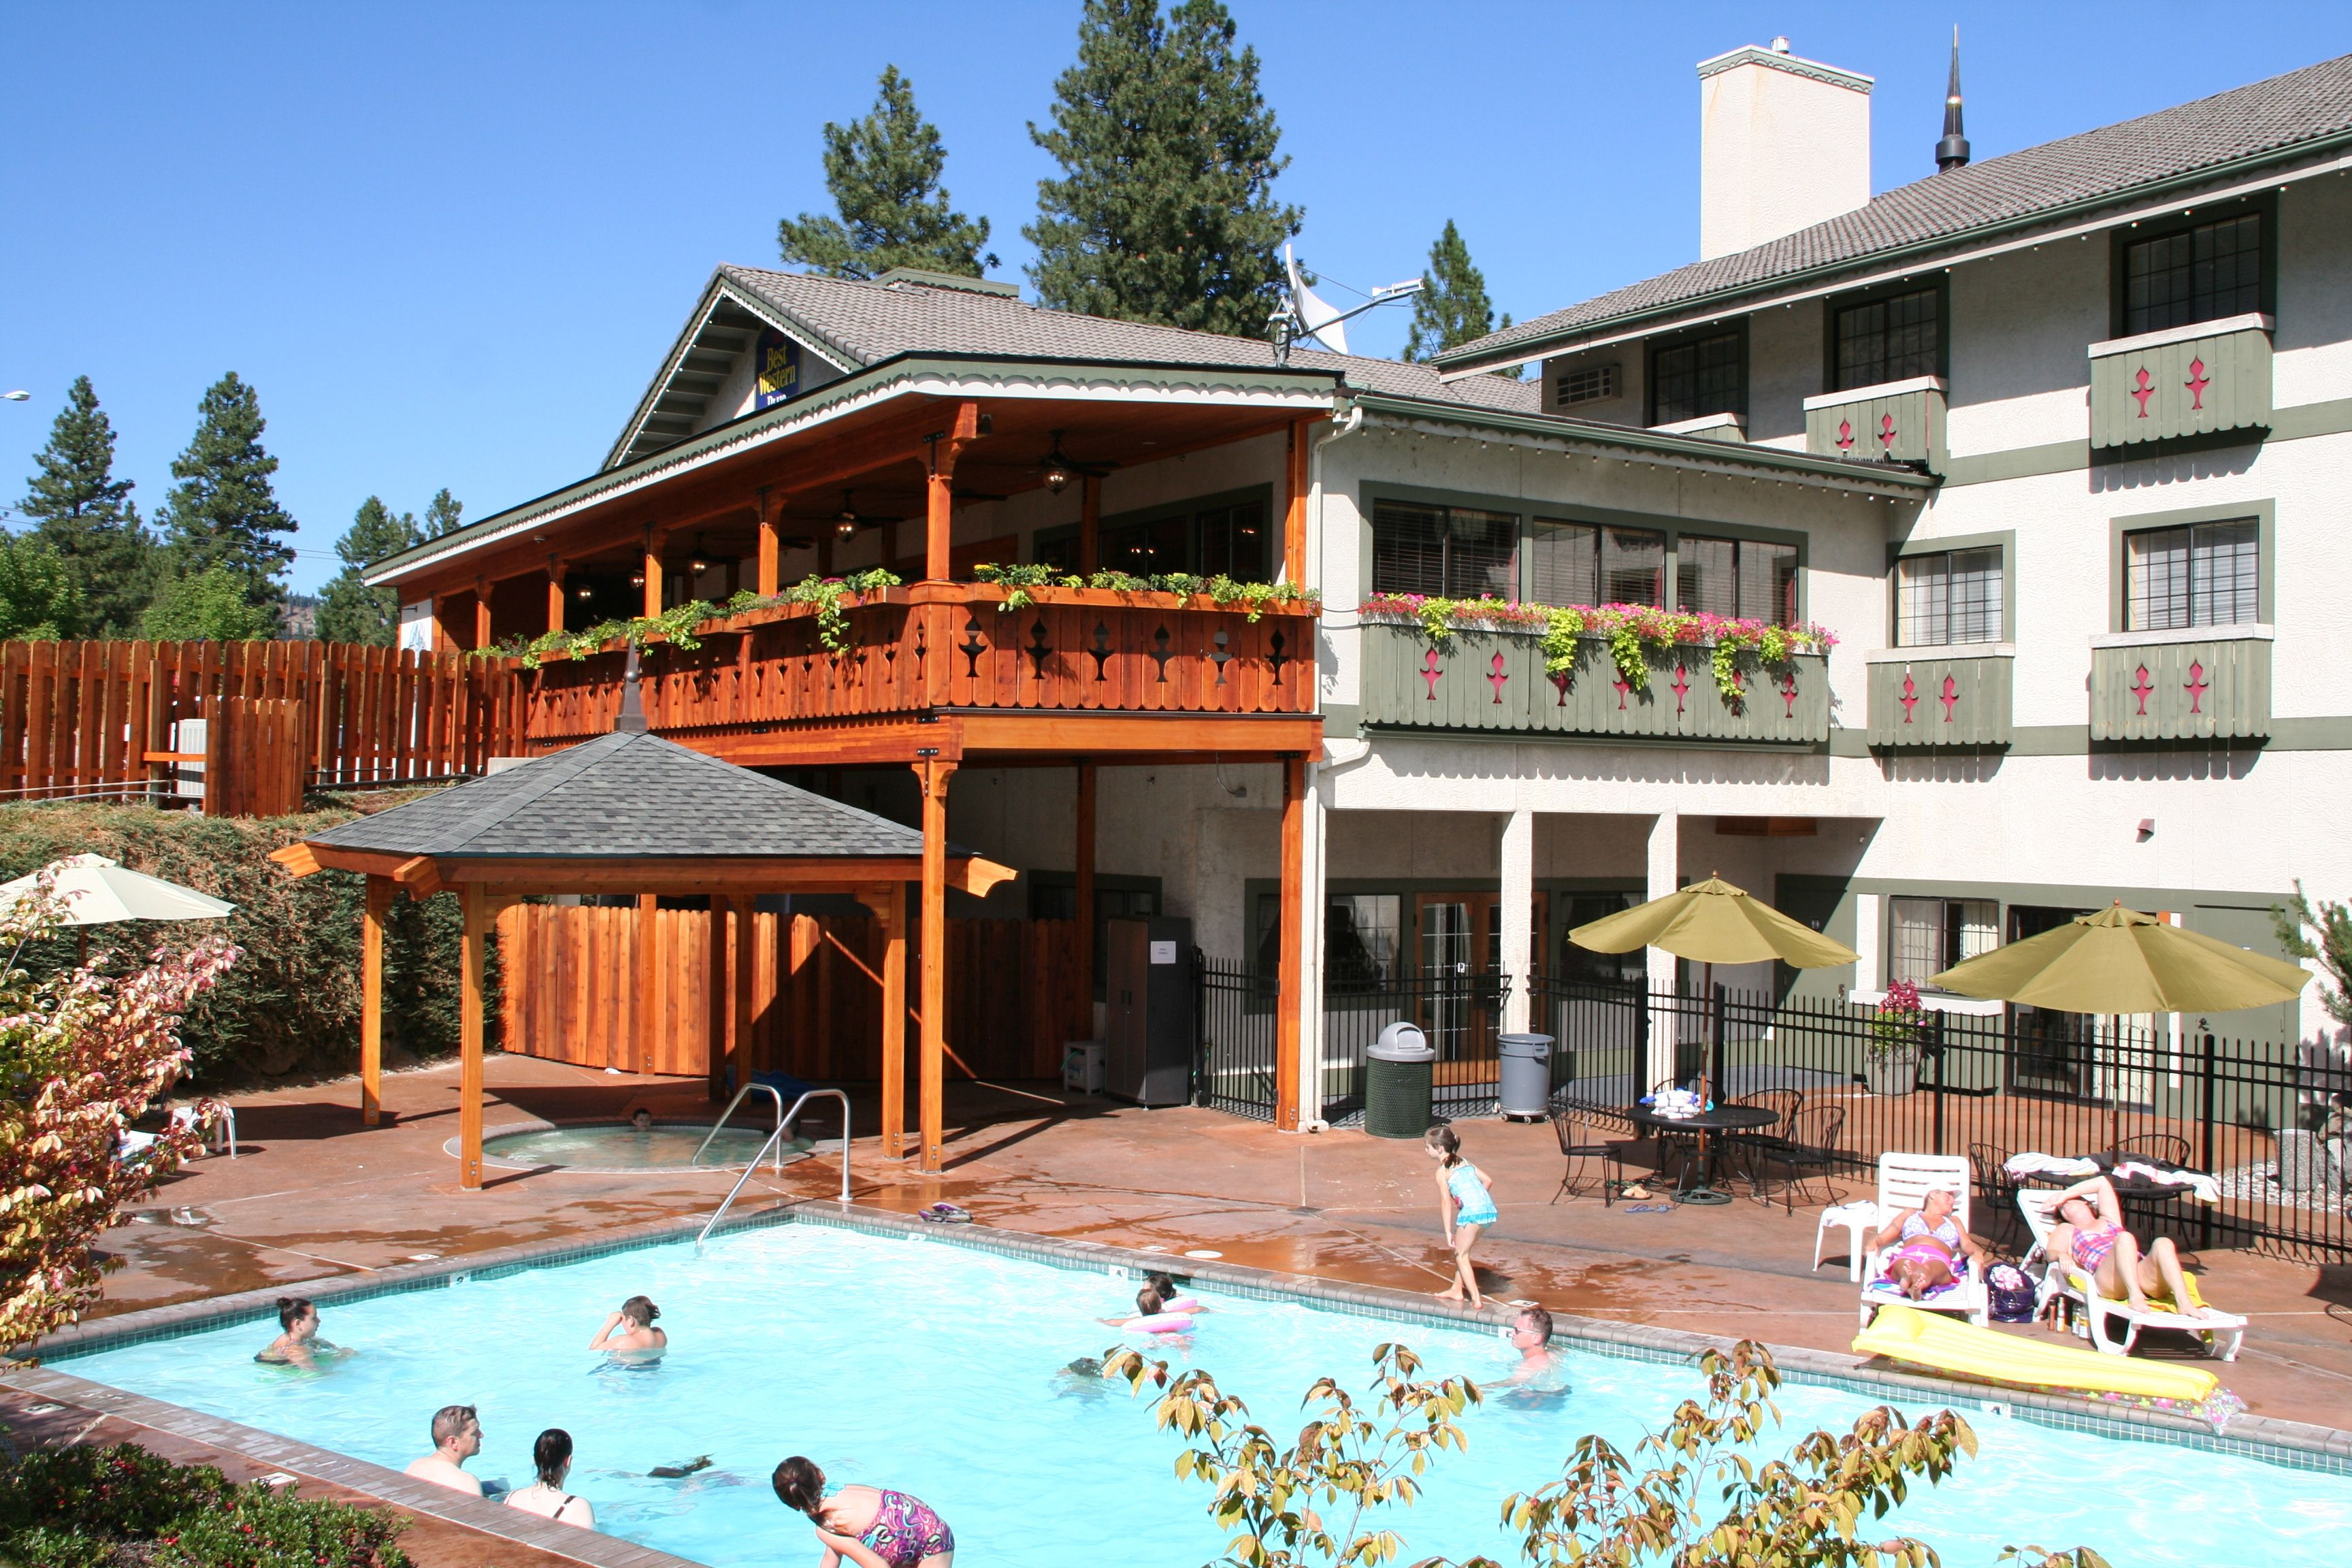 The Icicle Village Resort In Leavenworth  Swimming Pool Is